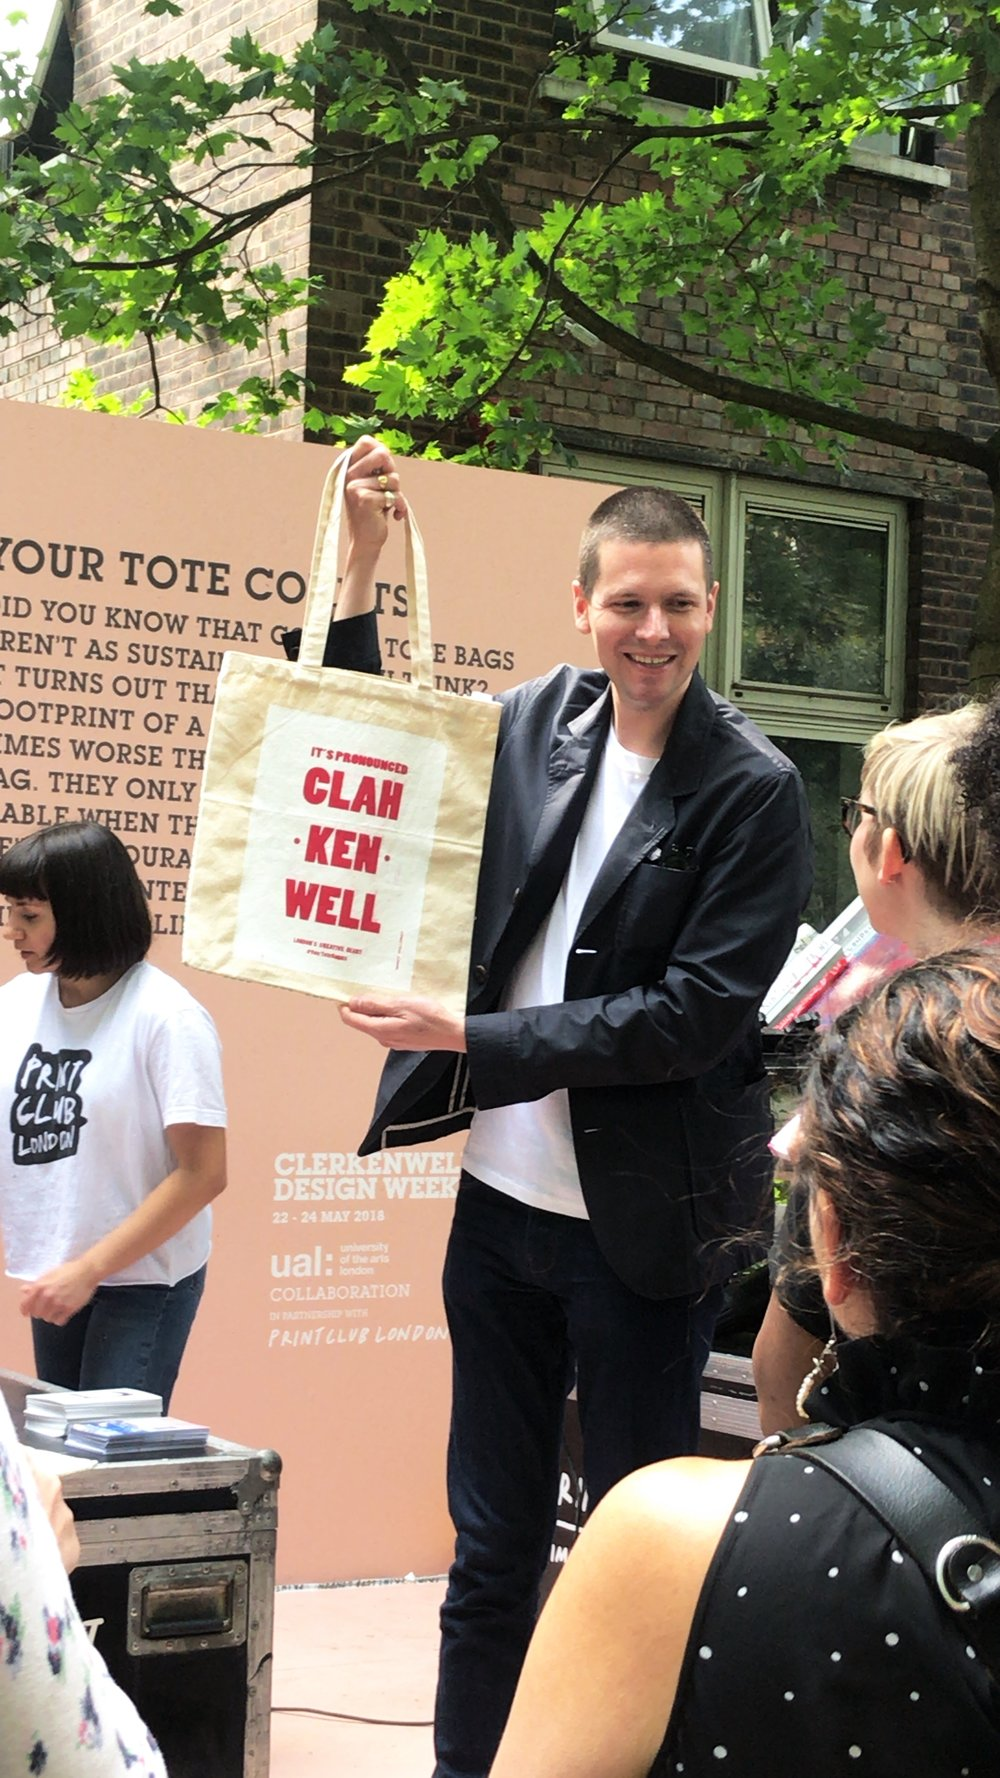 Print Club London: Your Tote Counts